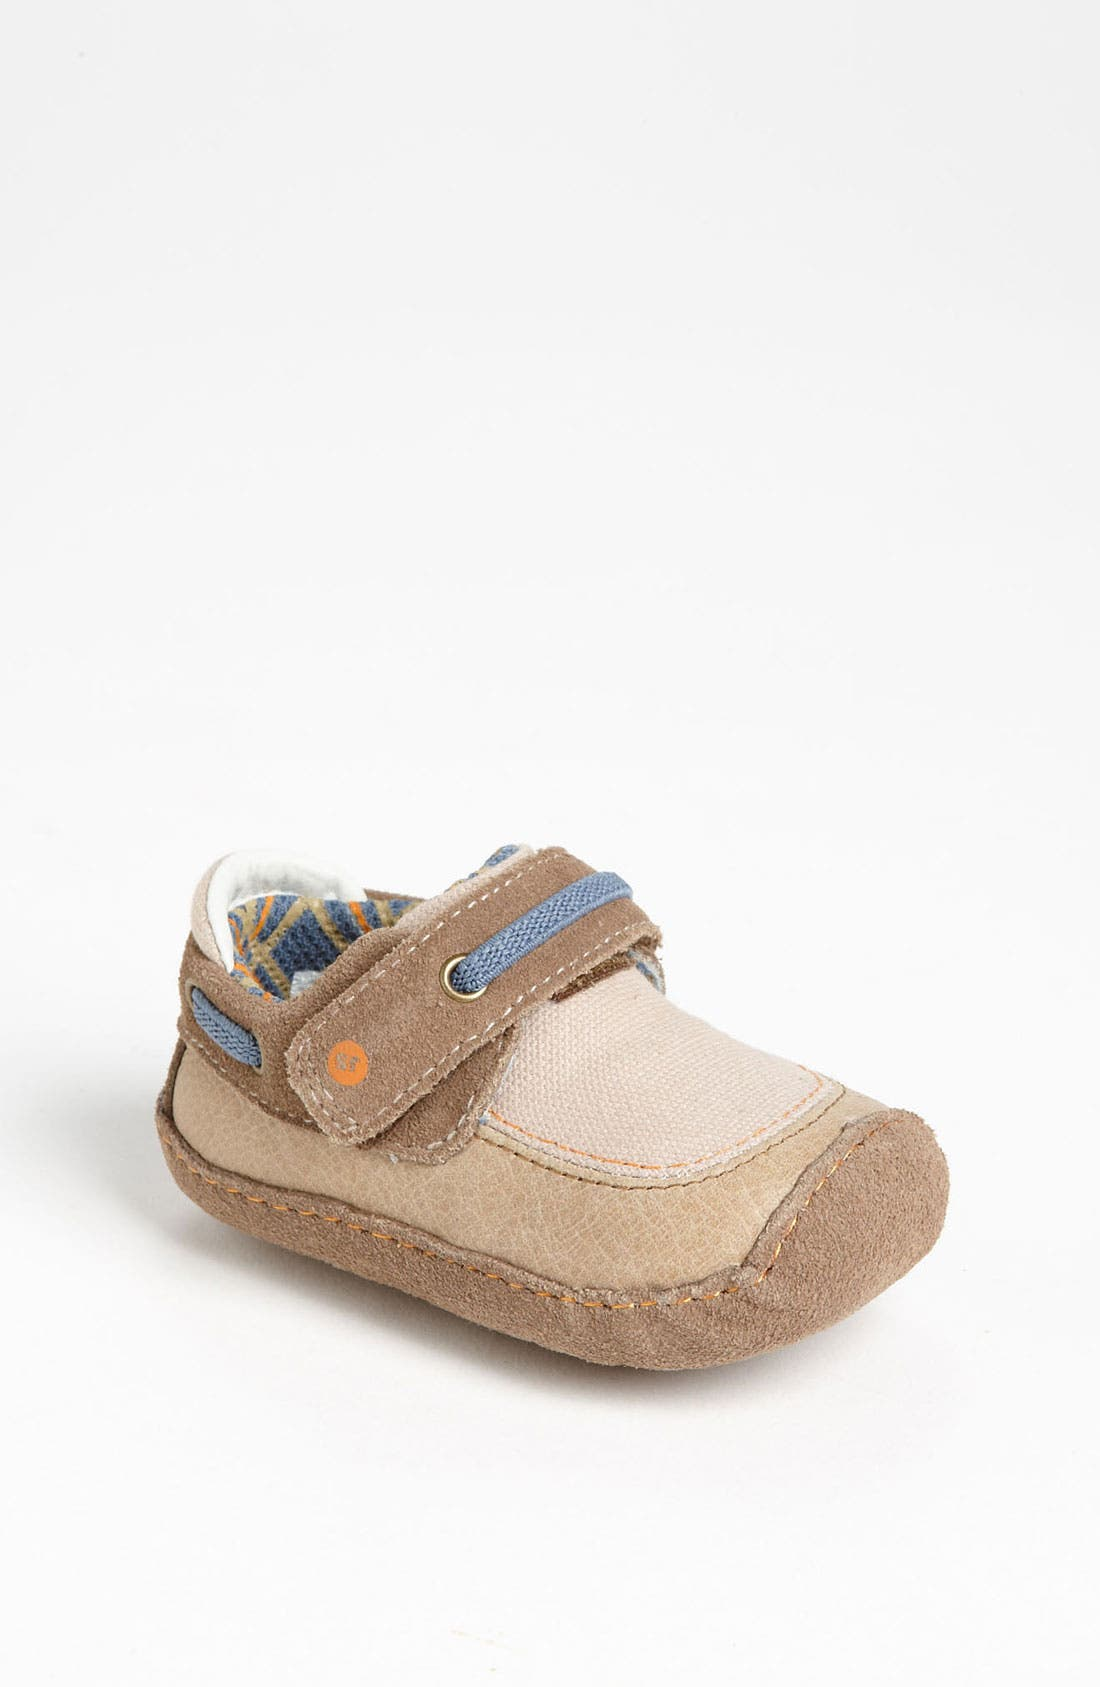 Alternate Image 1 Selected - Stride Rite 'Crawl Mariner Monty' Slip-On (Baby)